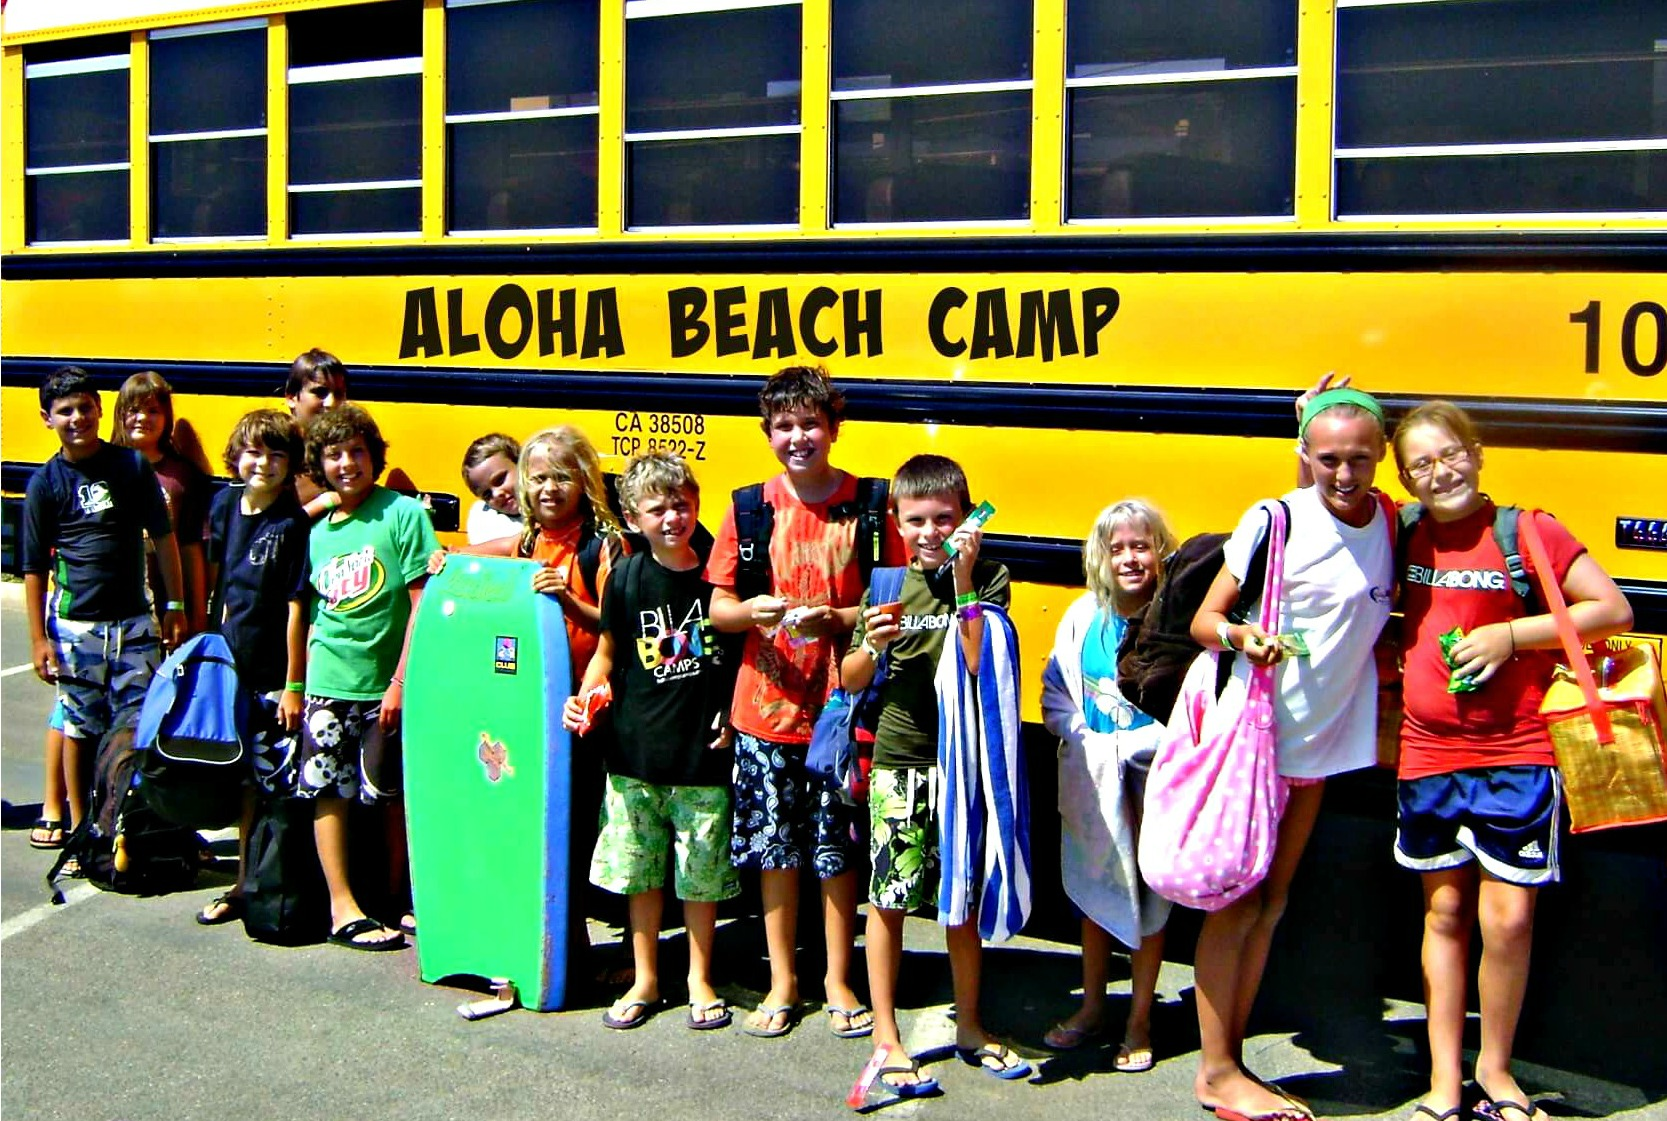 Campers standing in front of an Aloha Beach Camp Summer Day Camp bus.